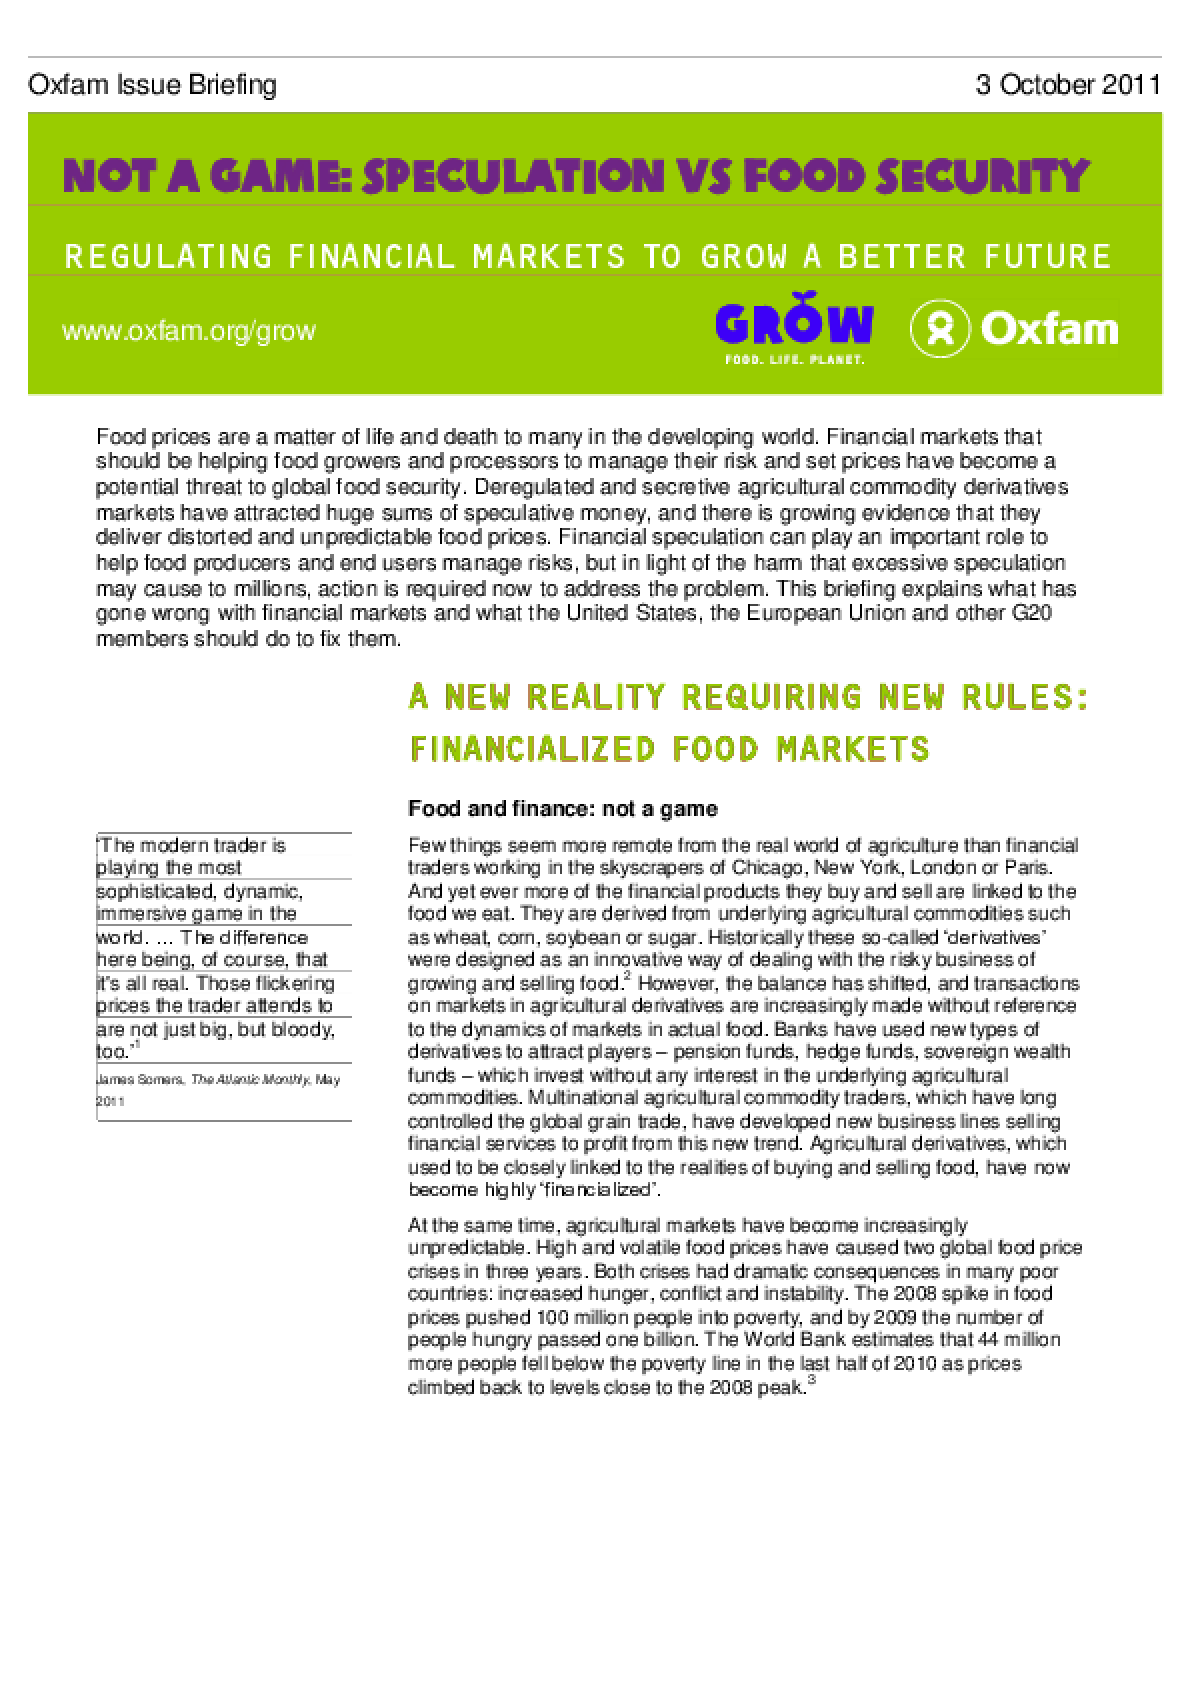 Not a Game, Speculation vs Food Security: Regulating financial markets to grow a better future